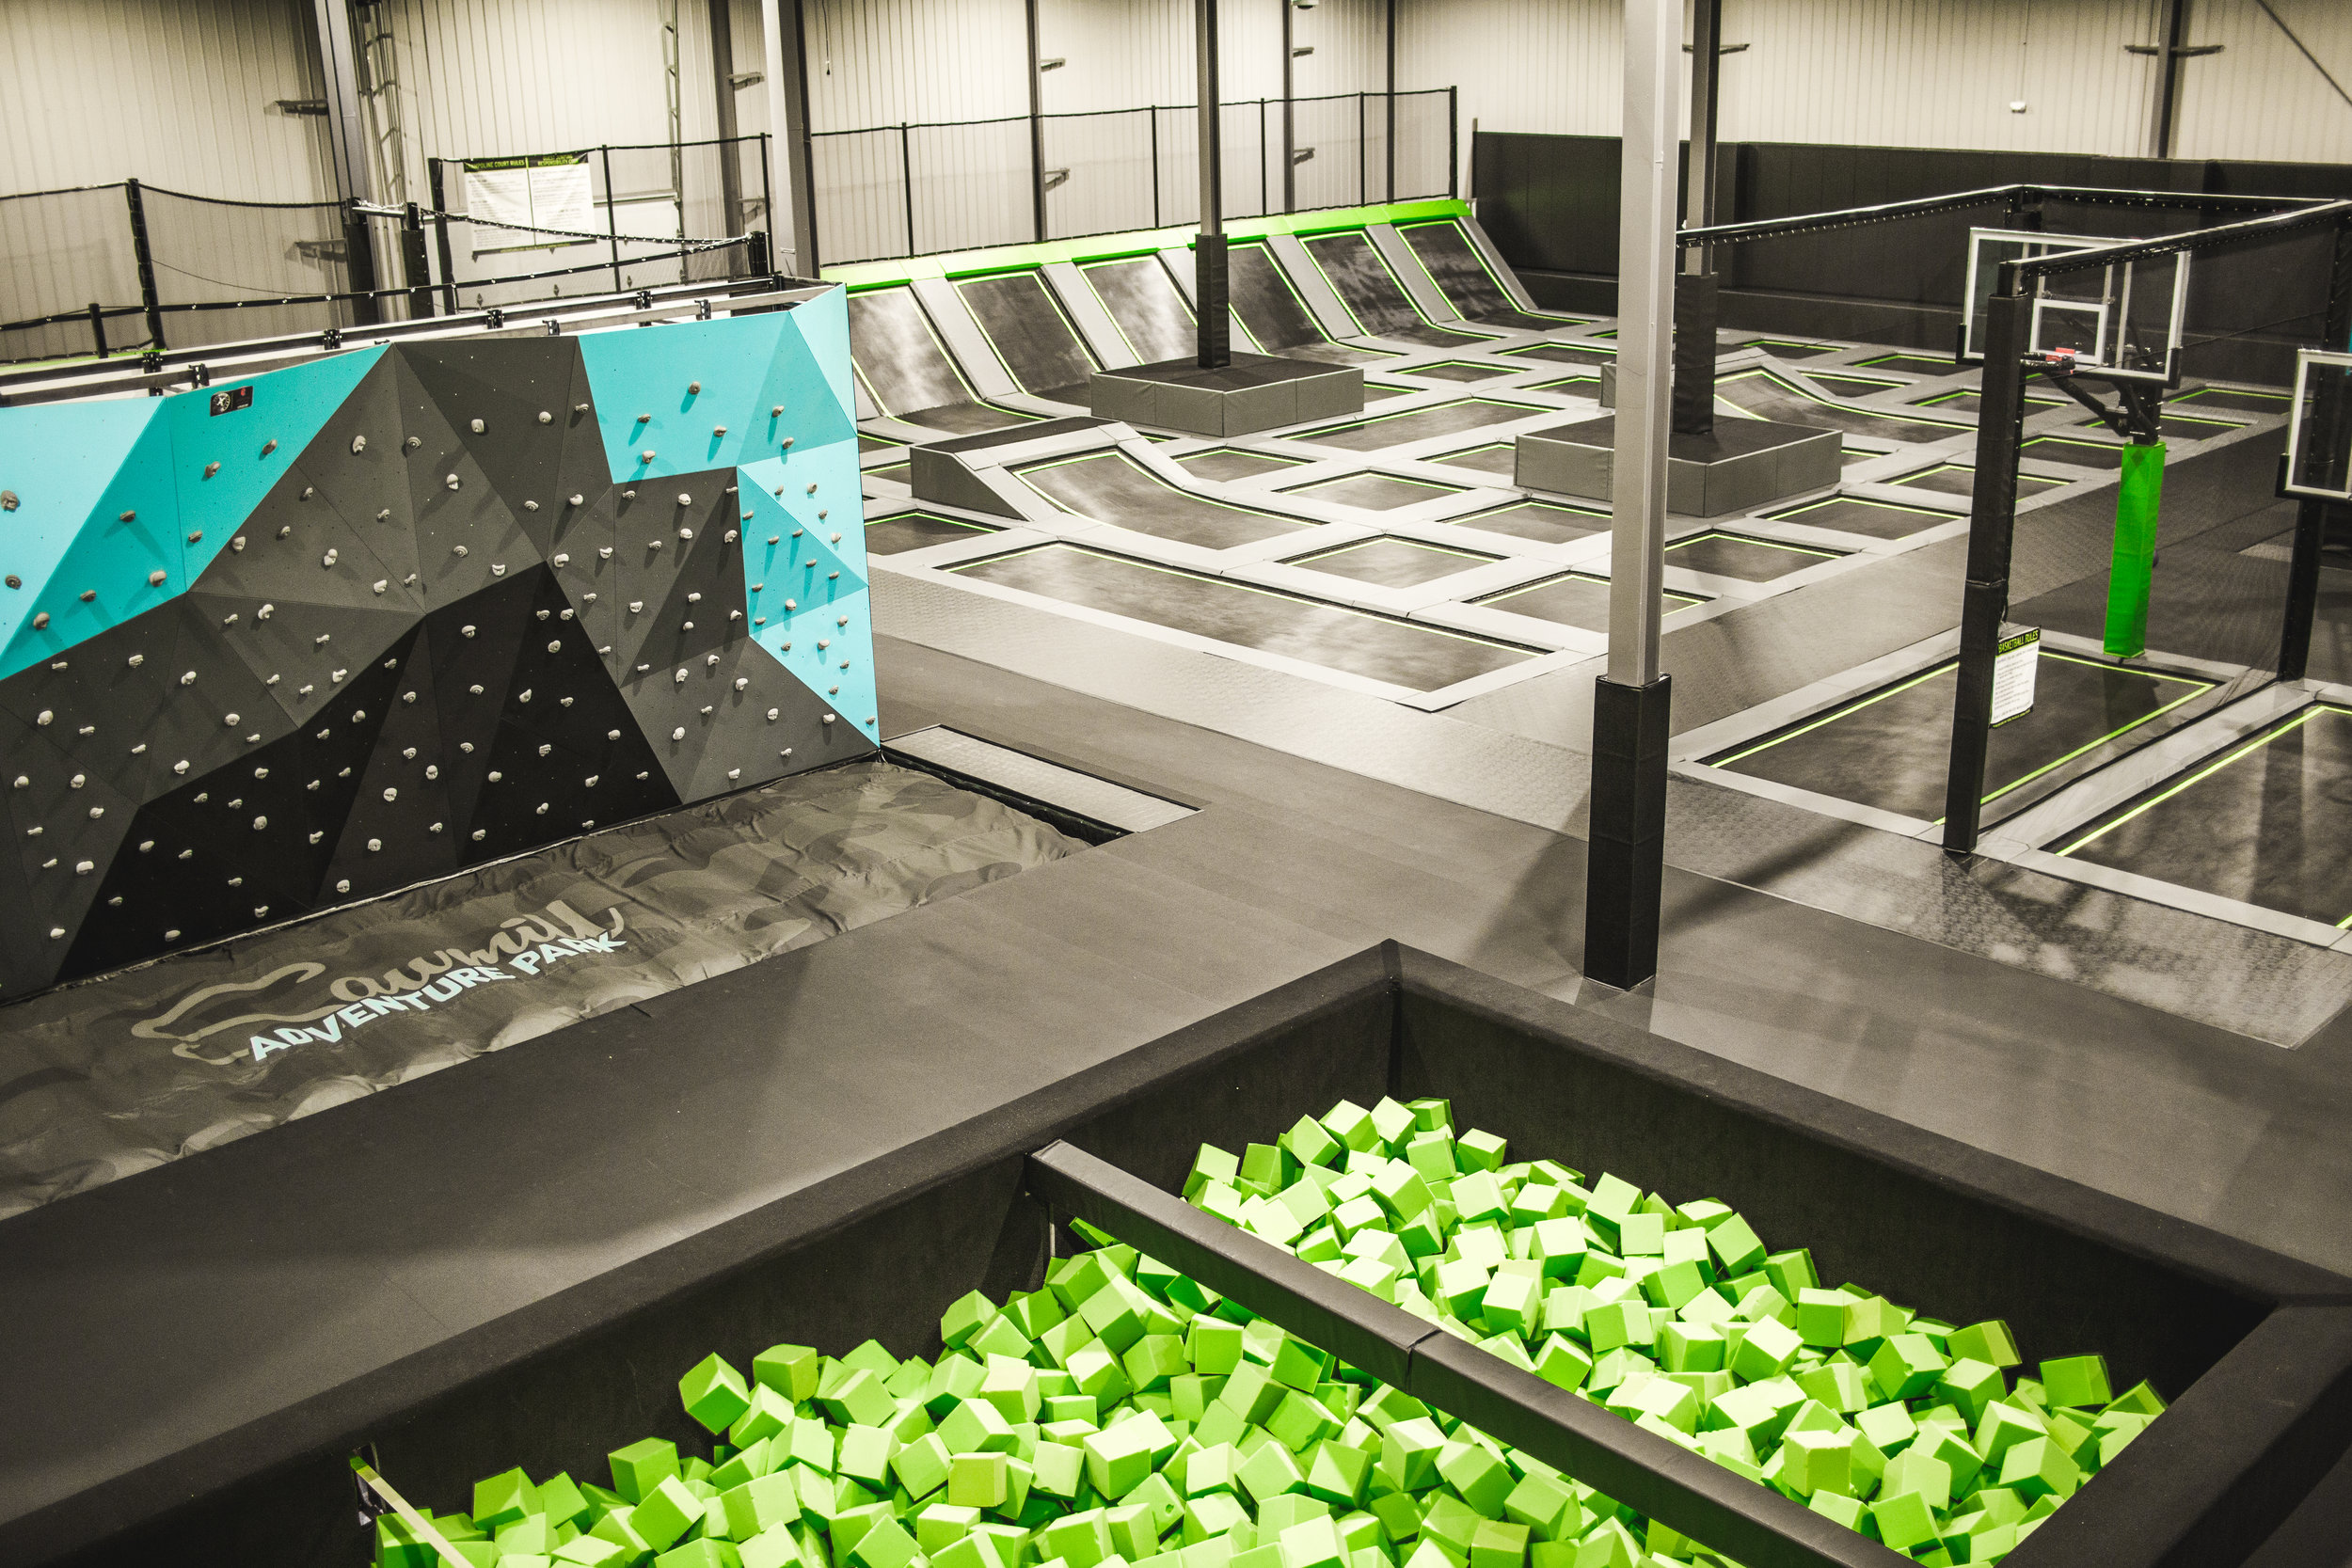 TRAMPOLINE DODGEBALL - Keep score or play to get an intense cardio workout. Best sport to ever hit the trampolines!